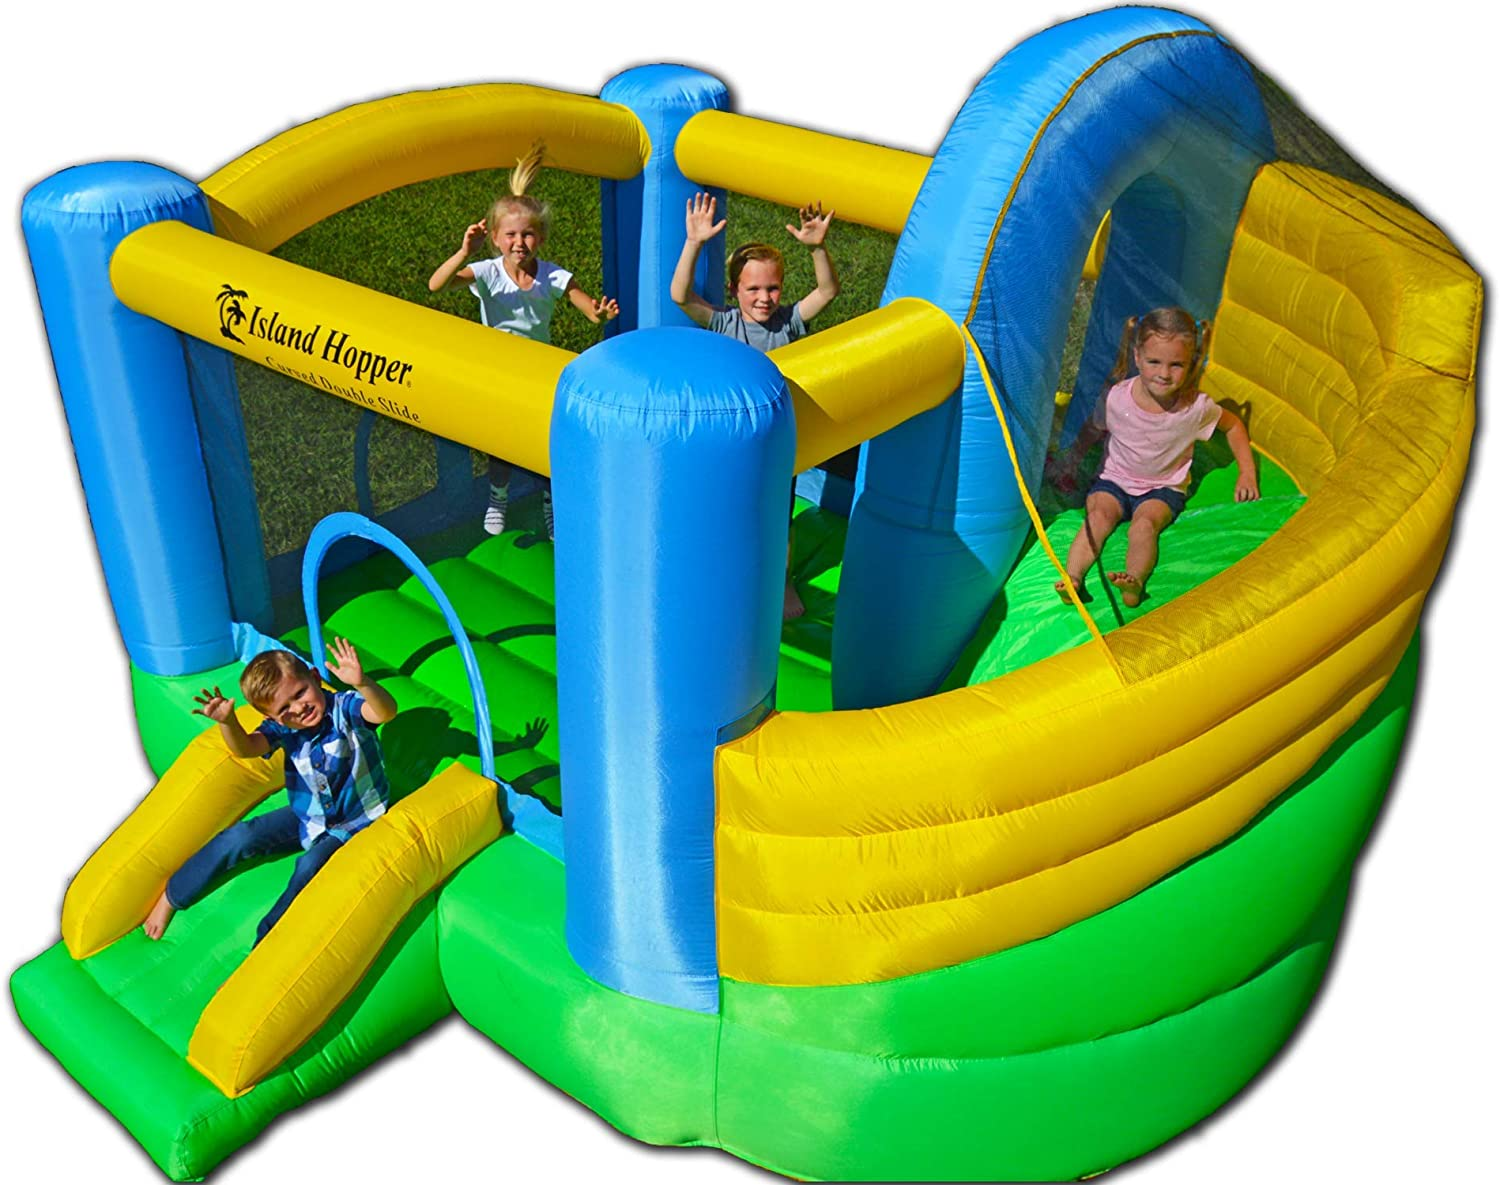 Curved Double Slide Recreational Kids Bounce House